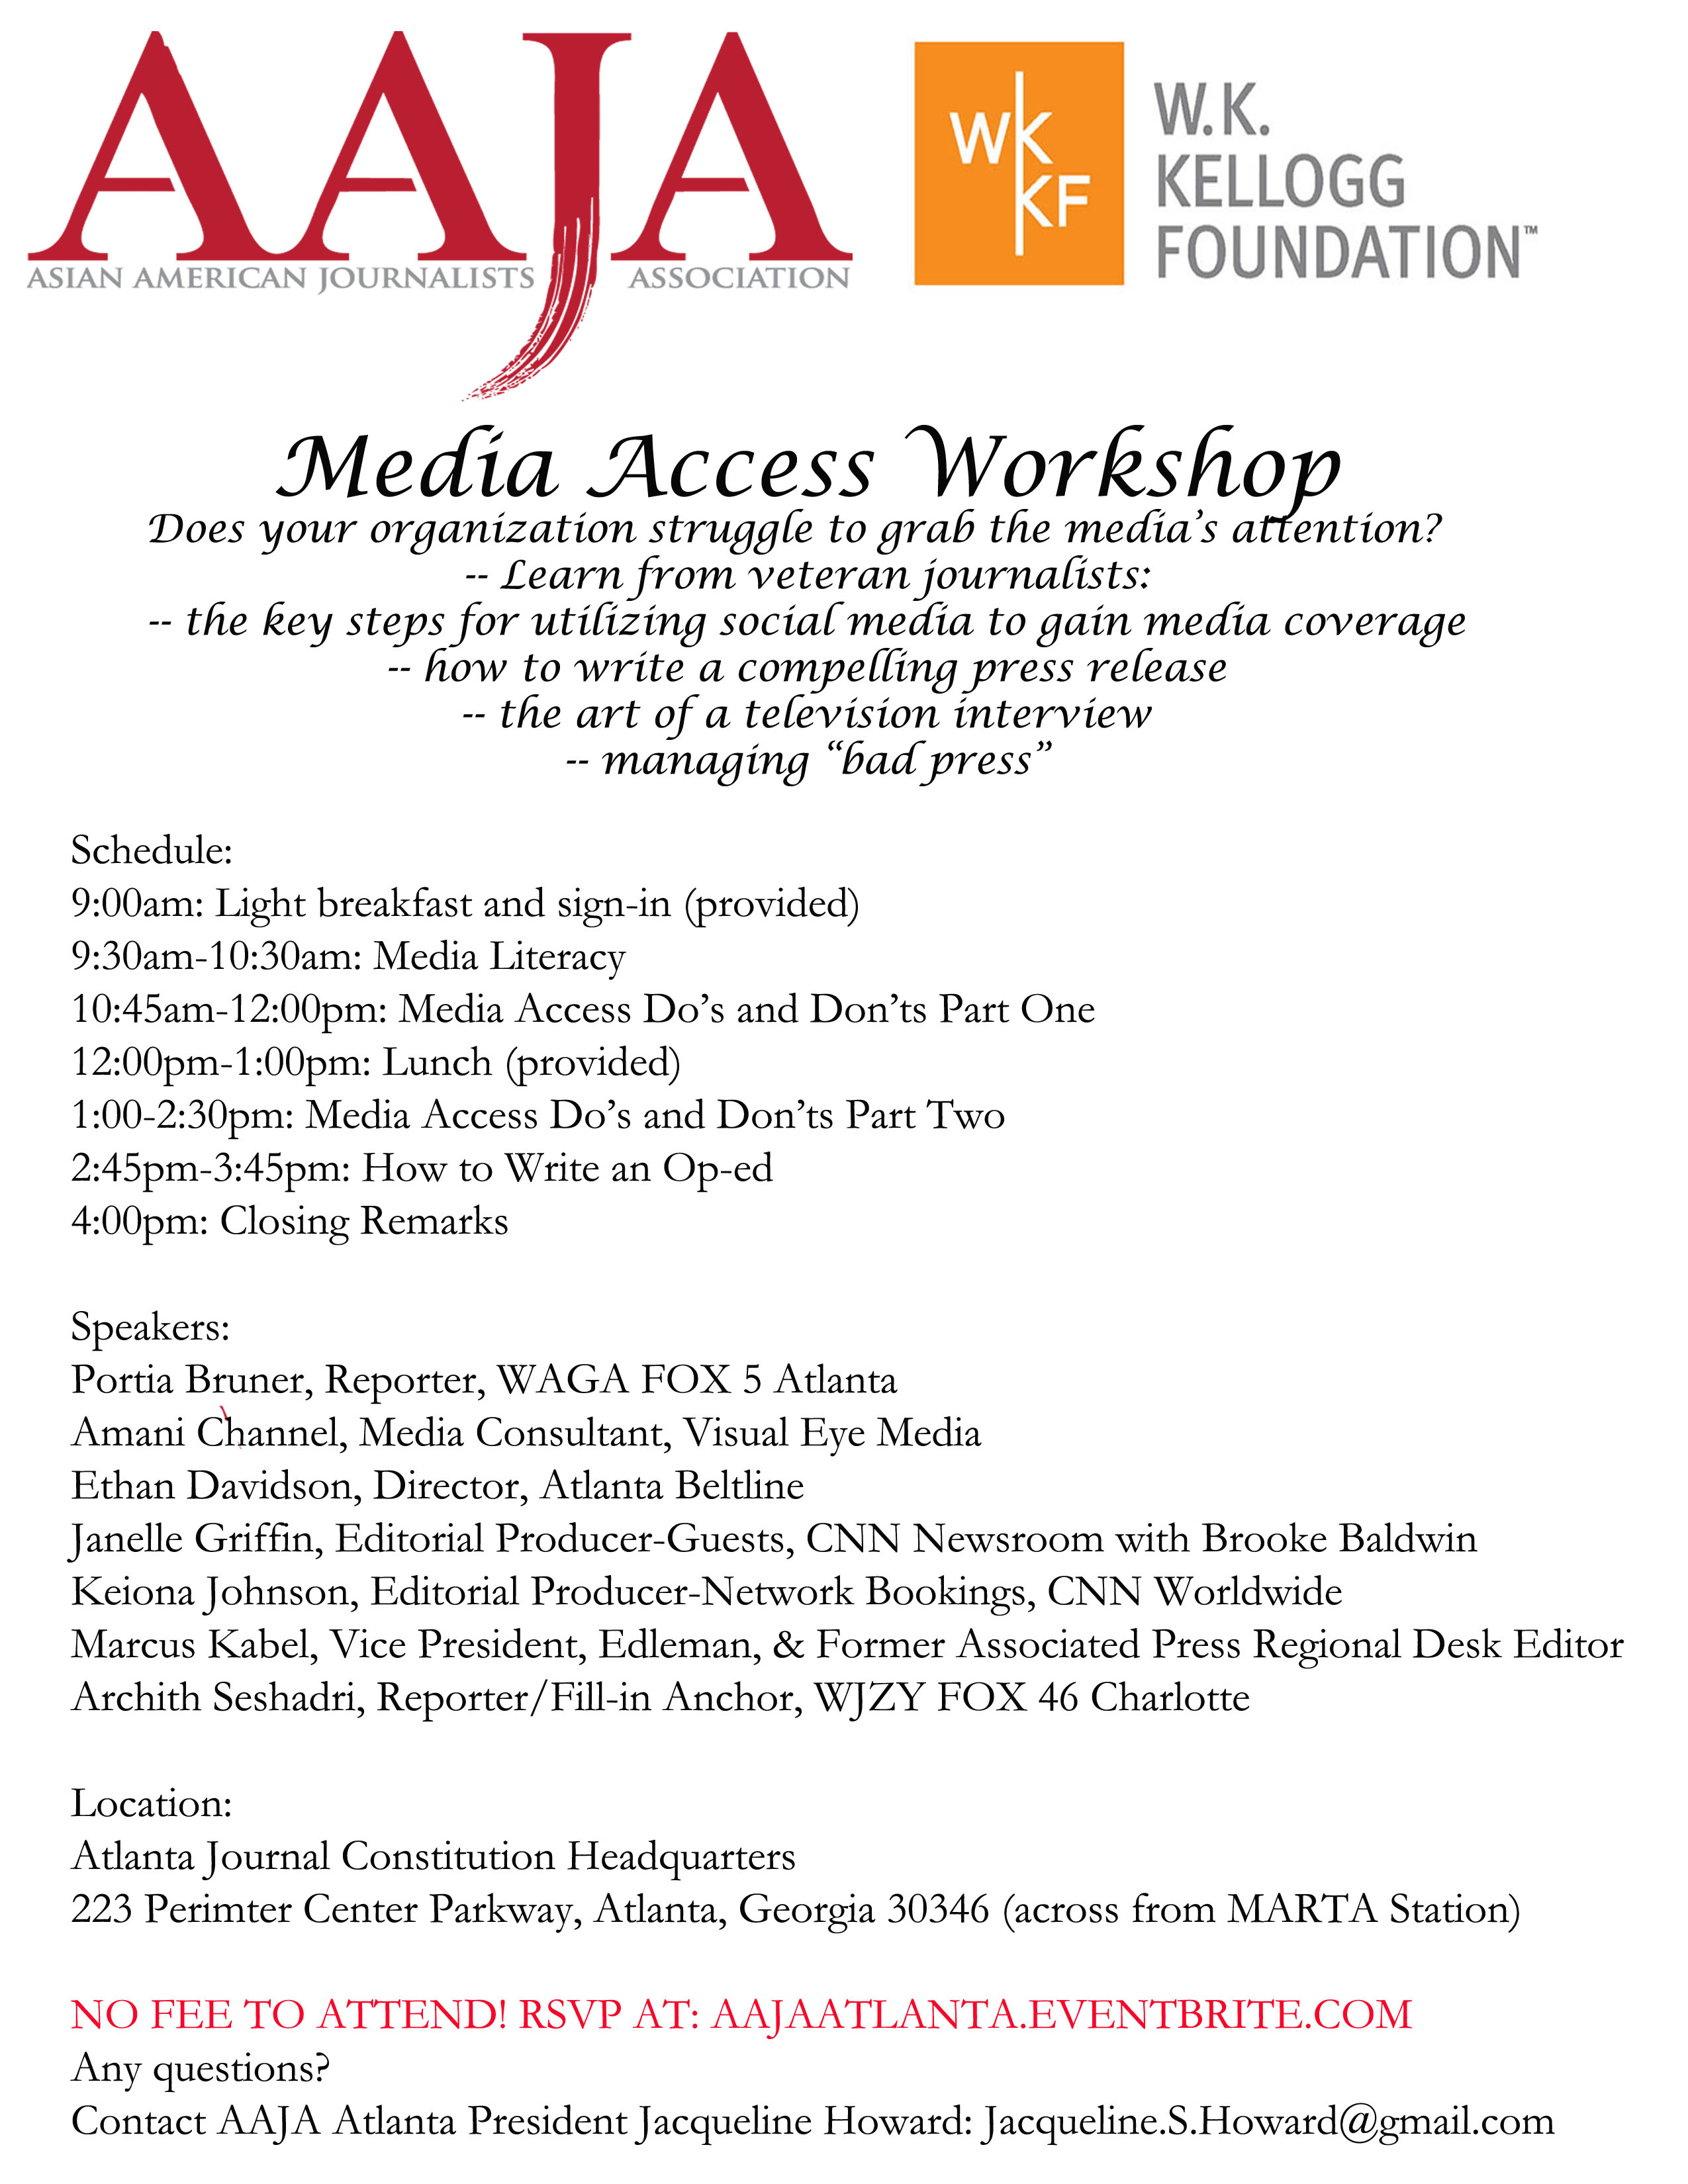 AAJA Media Access Workshop